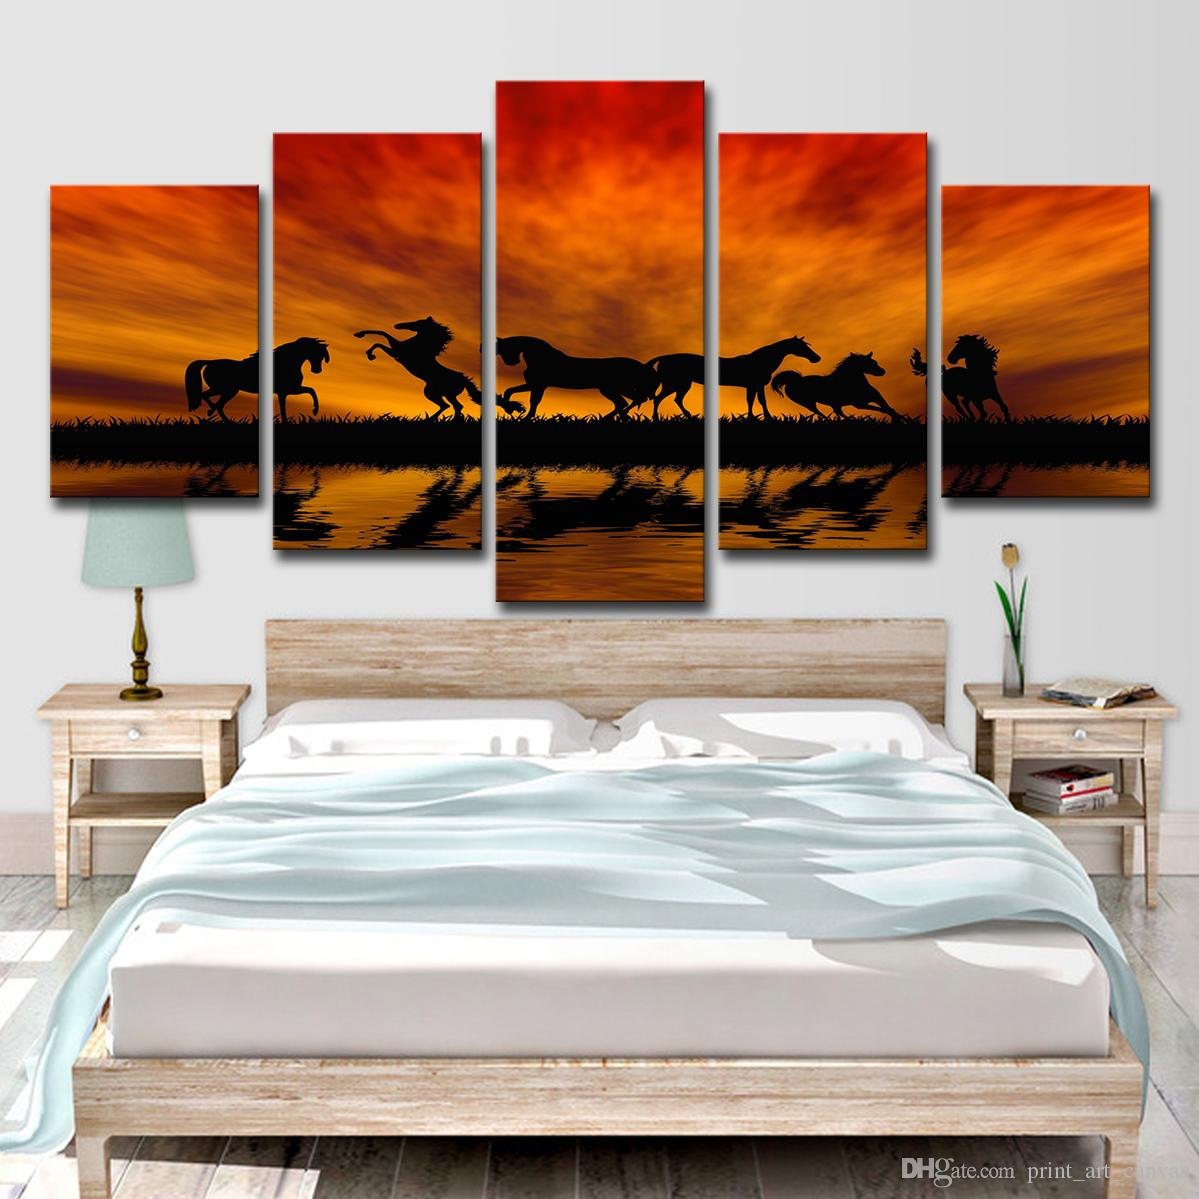 2020 Canvas Wall Art Pictures Living Room Hd Prints Lake Poster Joyous Horses Sunset Silhouette Paintings Home Decor From Print Art Canvas 14 77 Dhgate Com